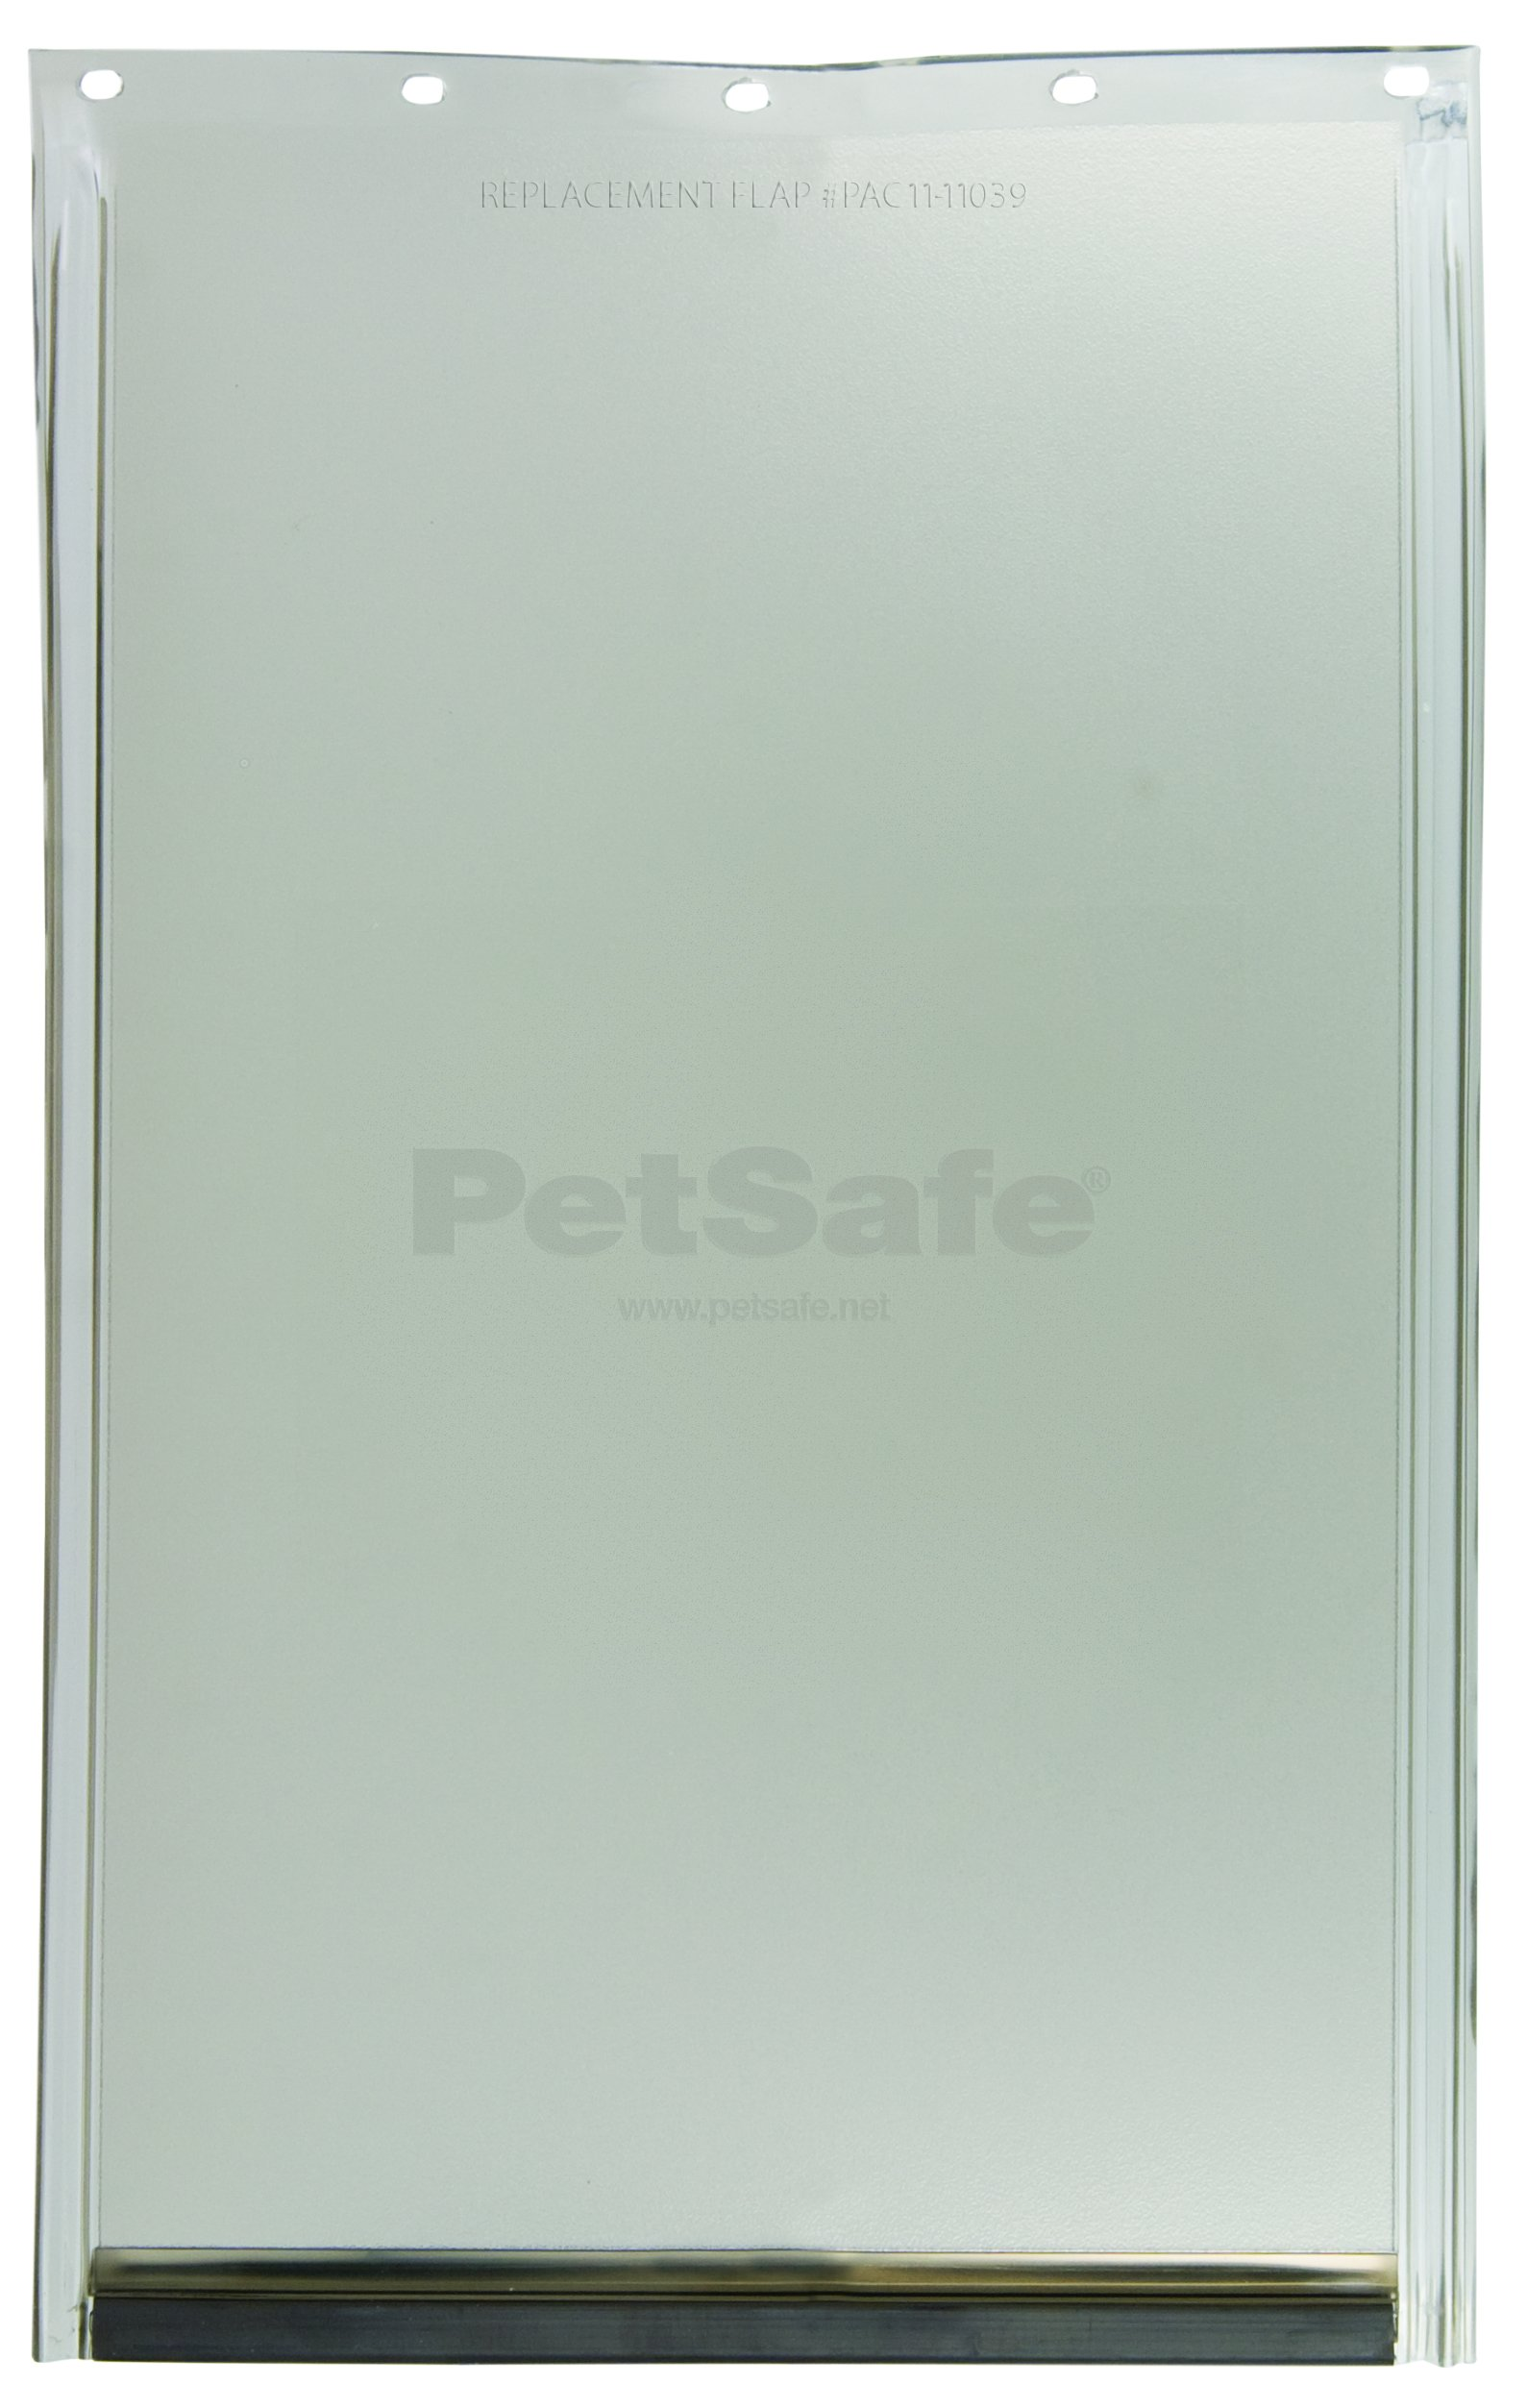 PetSafe Dog and Cat Door Replacement Flap, Large, 10 1/8'' x 16 7/8'', PAC11-11039, Tinted Vinyl, Magnetic